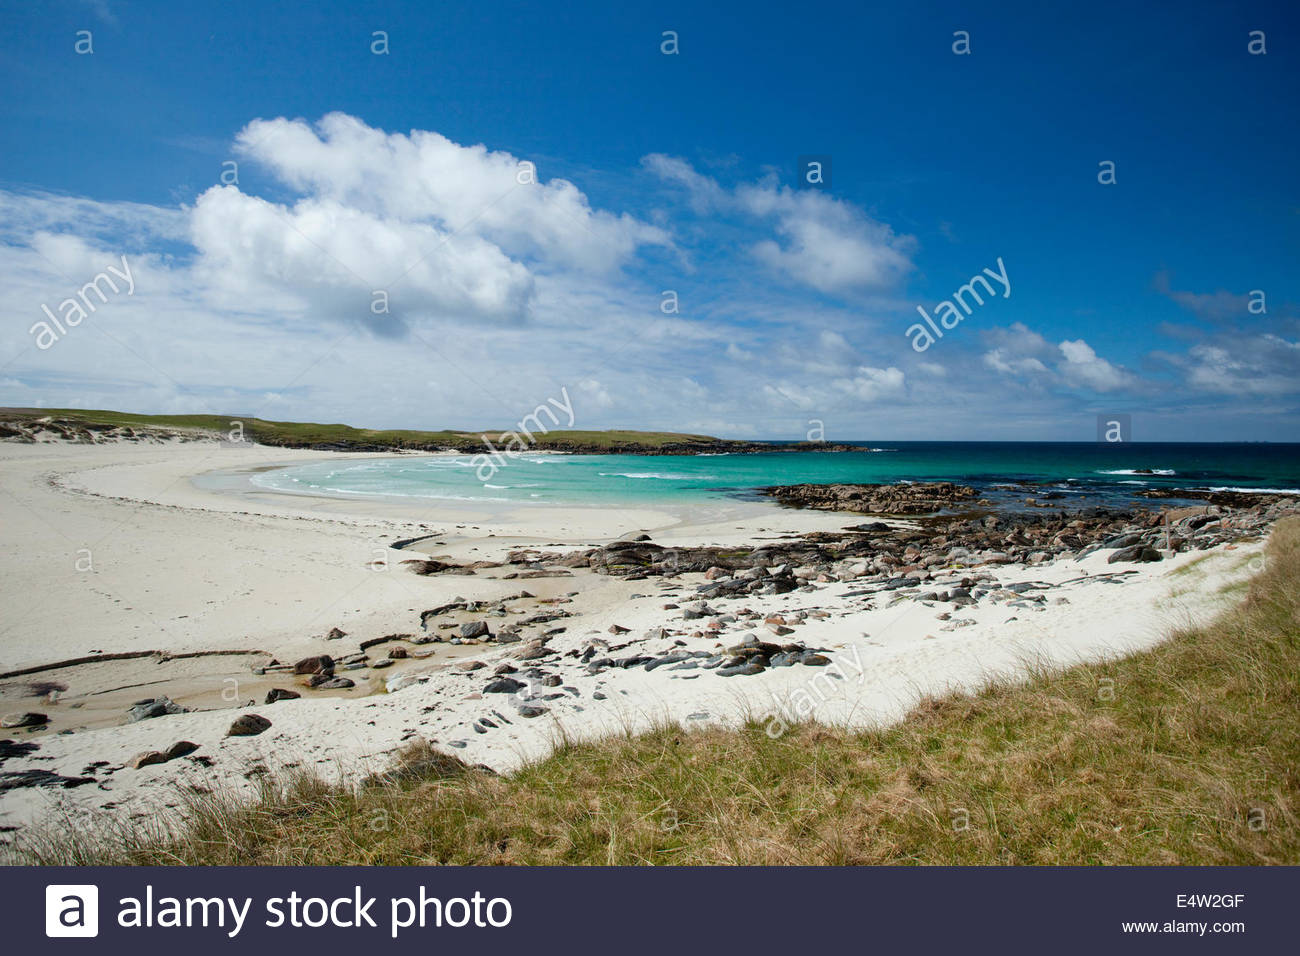 Looking over Hosta Beach or Traigh stir, North Uist, Outer Hebrides, Scotland. - Stock Image